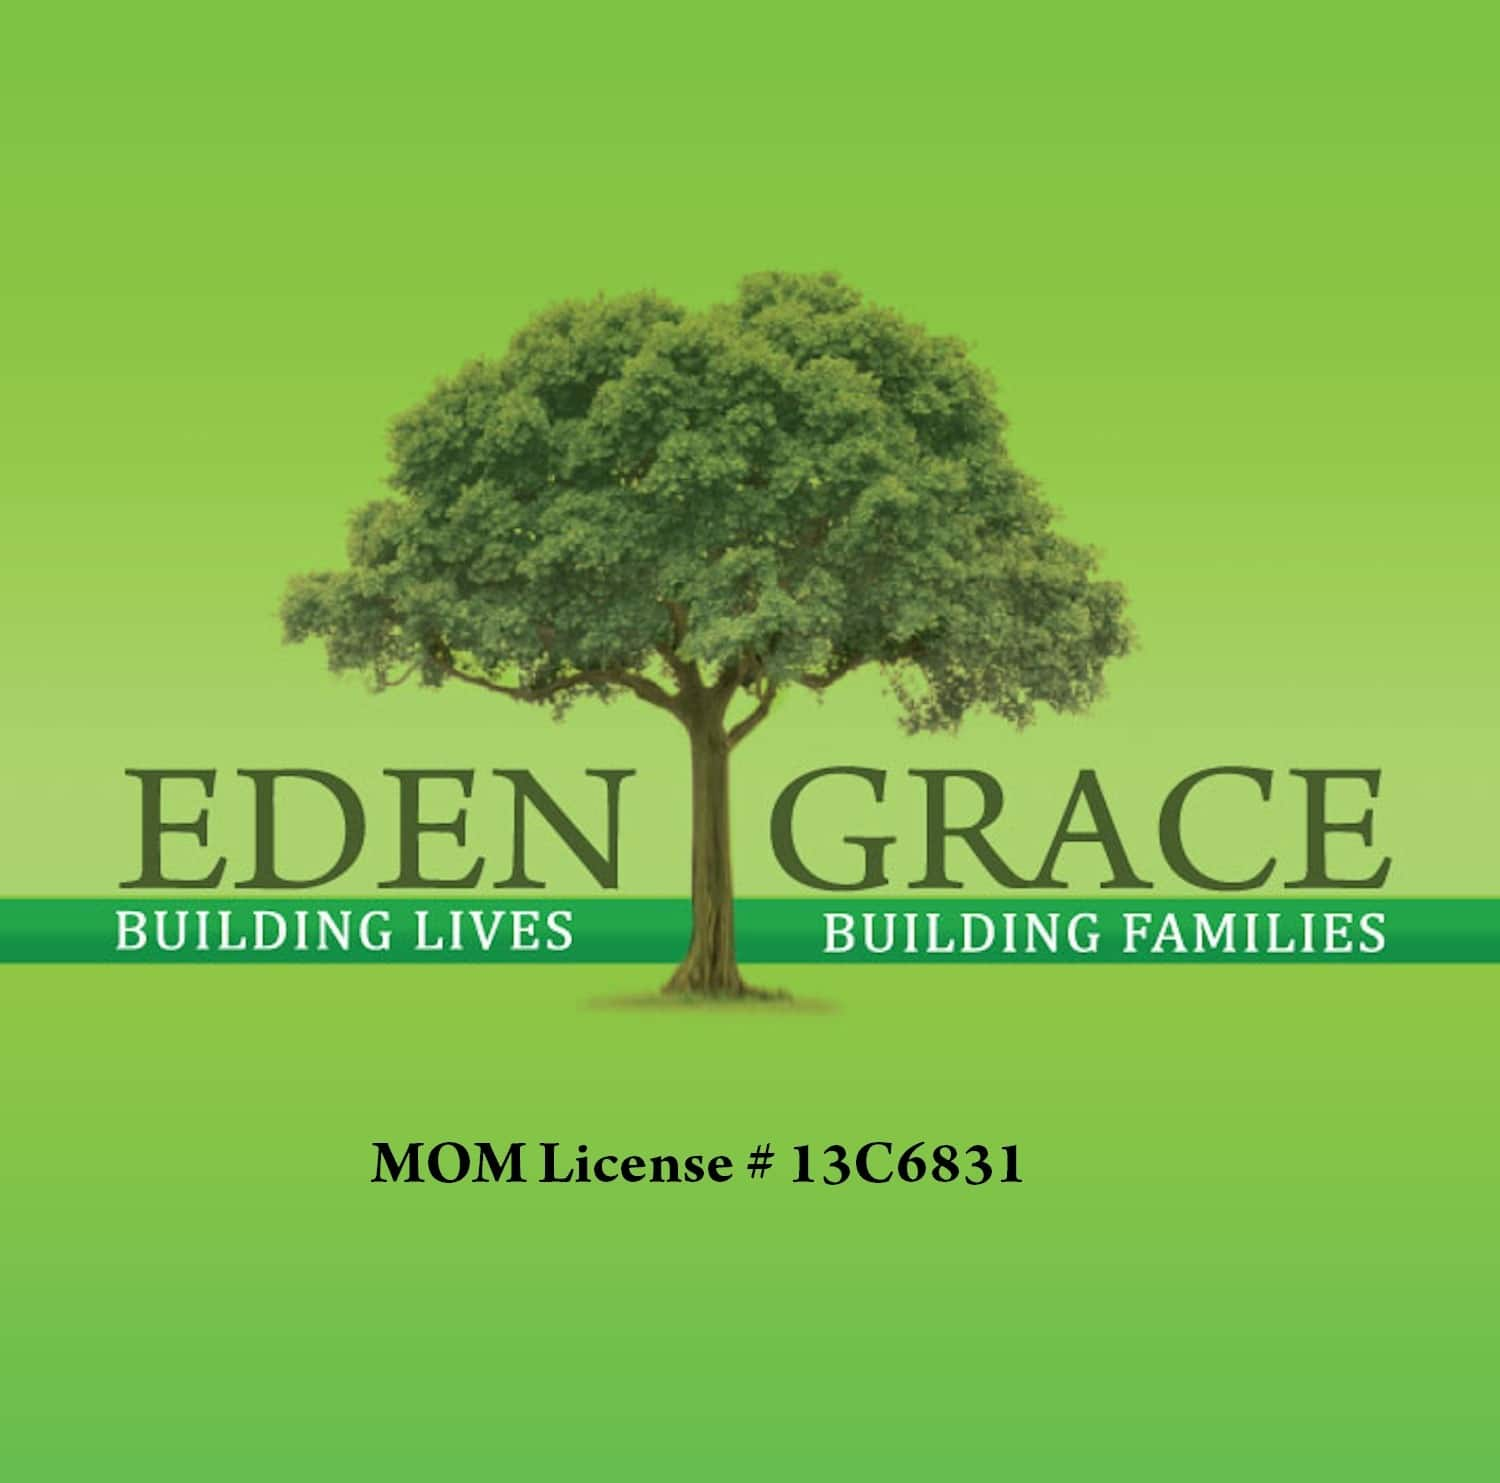 EDEN GRACE HR SOLUTIONS & MAID AGENCY - ORCHARD